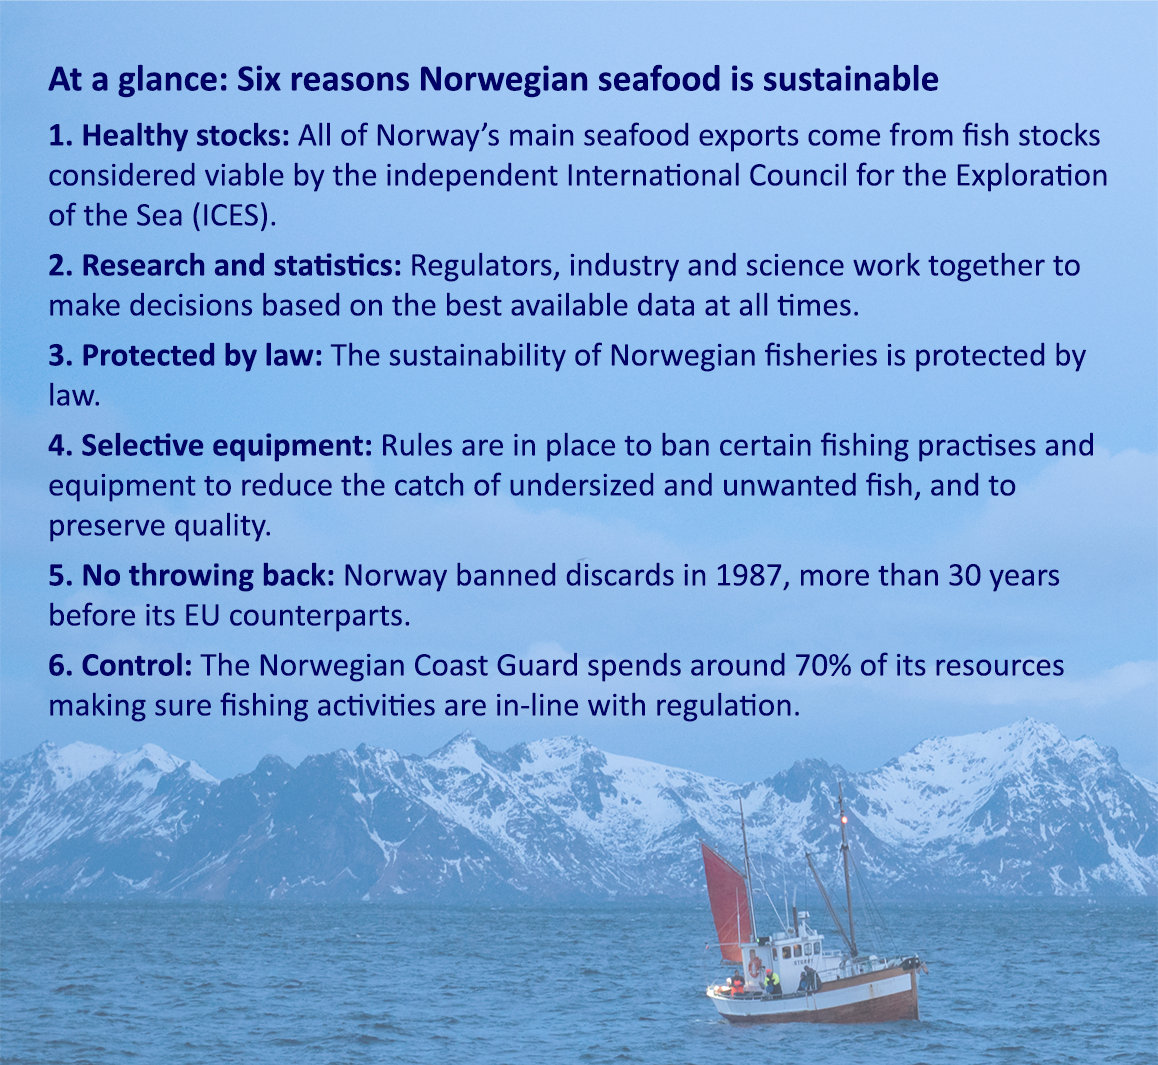 Six reasons Norwegian seafood is sustainable